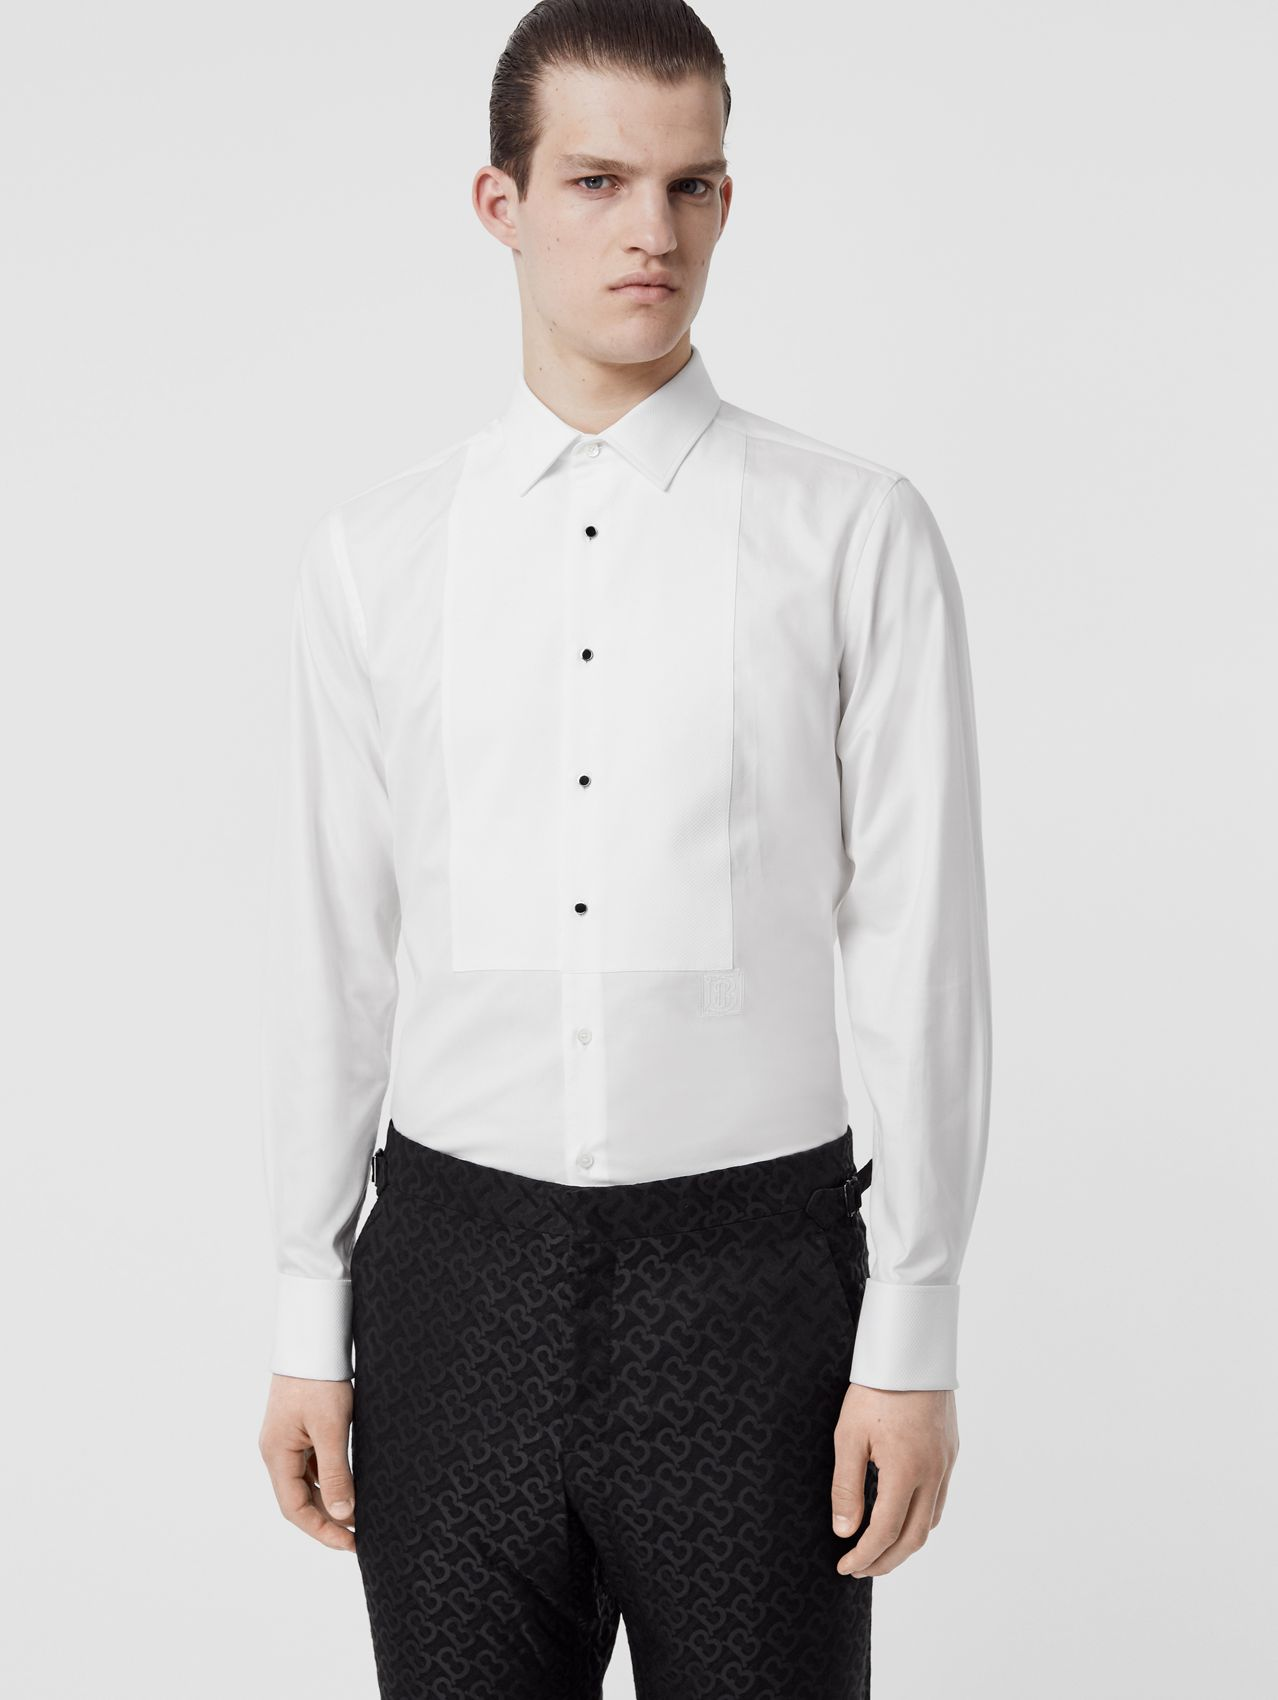 Panelled Bib Cotton Oxford Dress Shirt in White